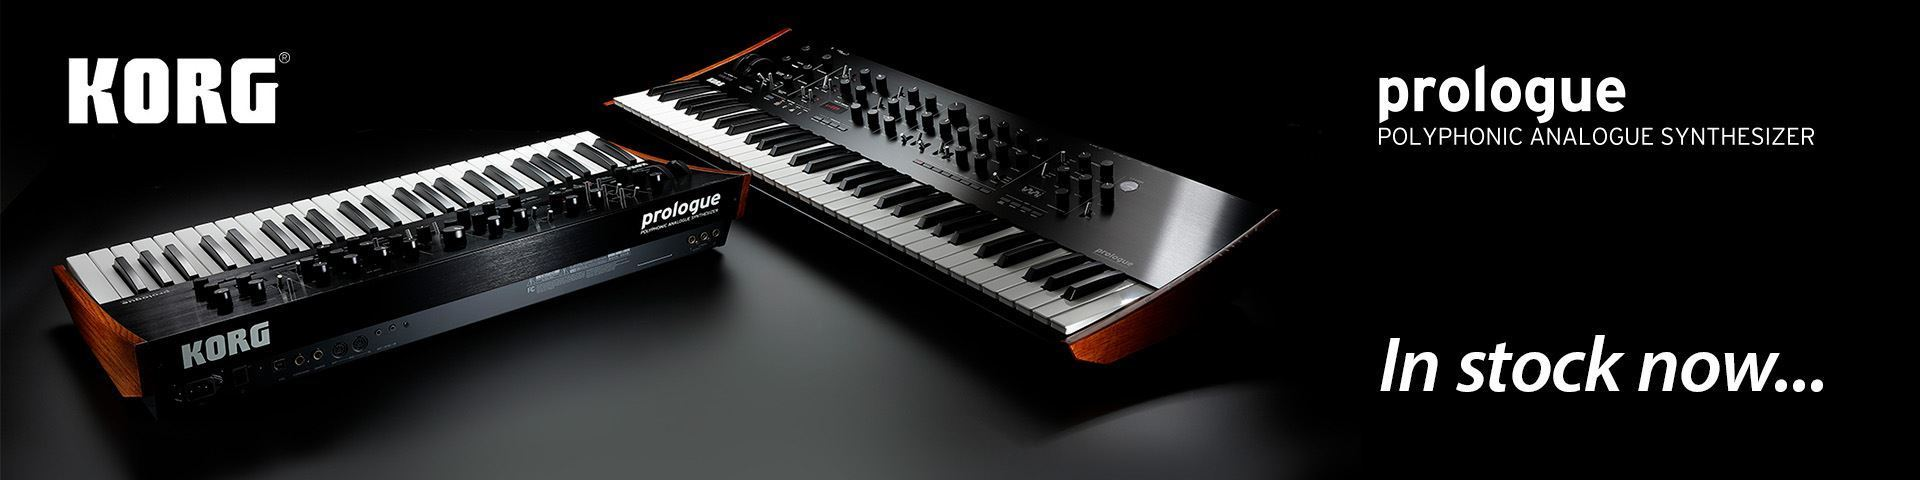 Korg Prologue In Stock Now at Mega Music